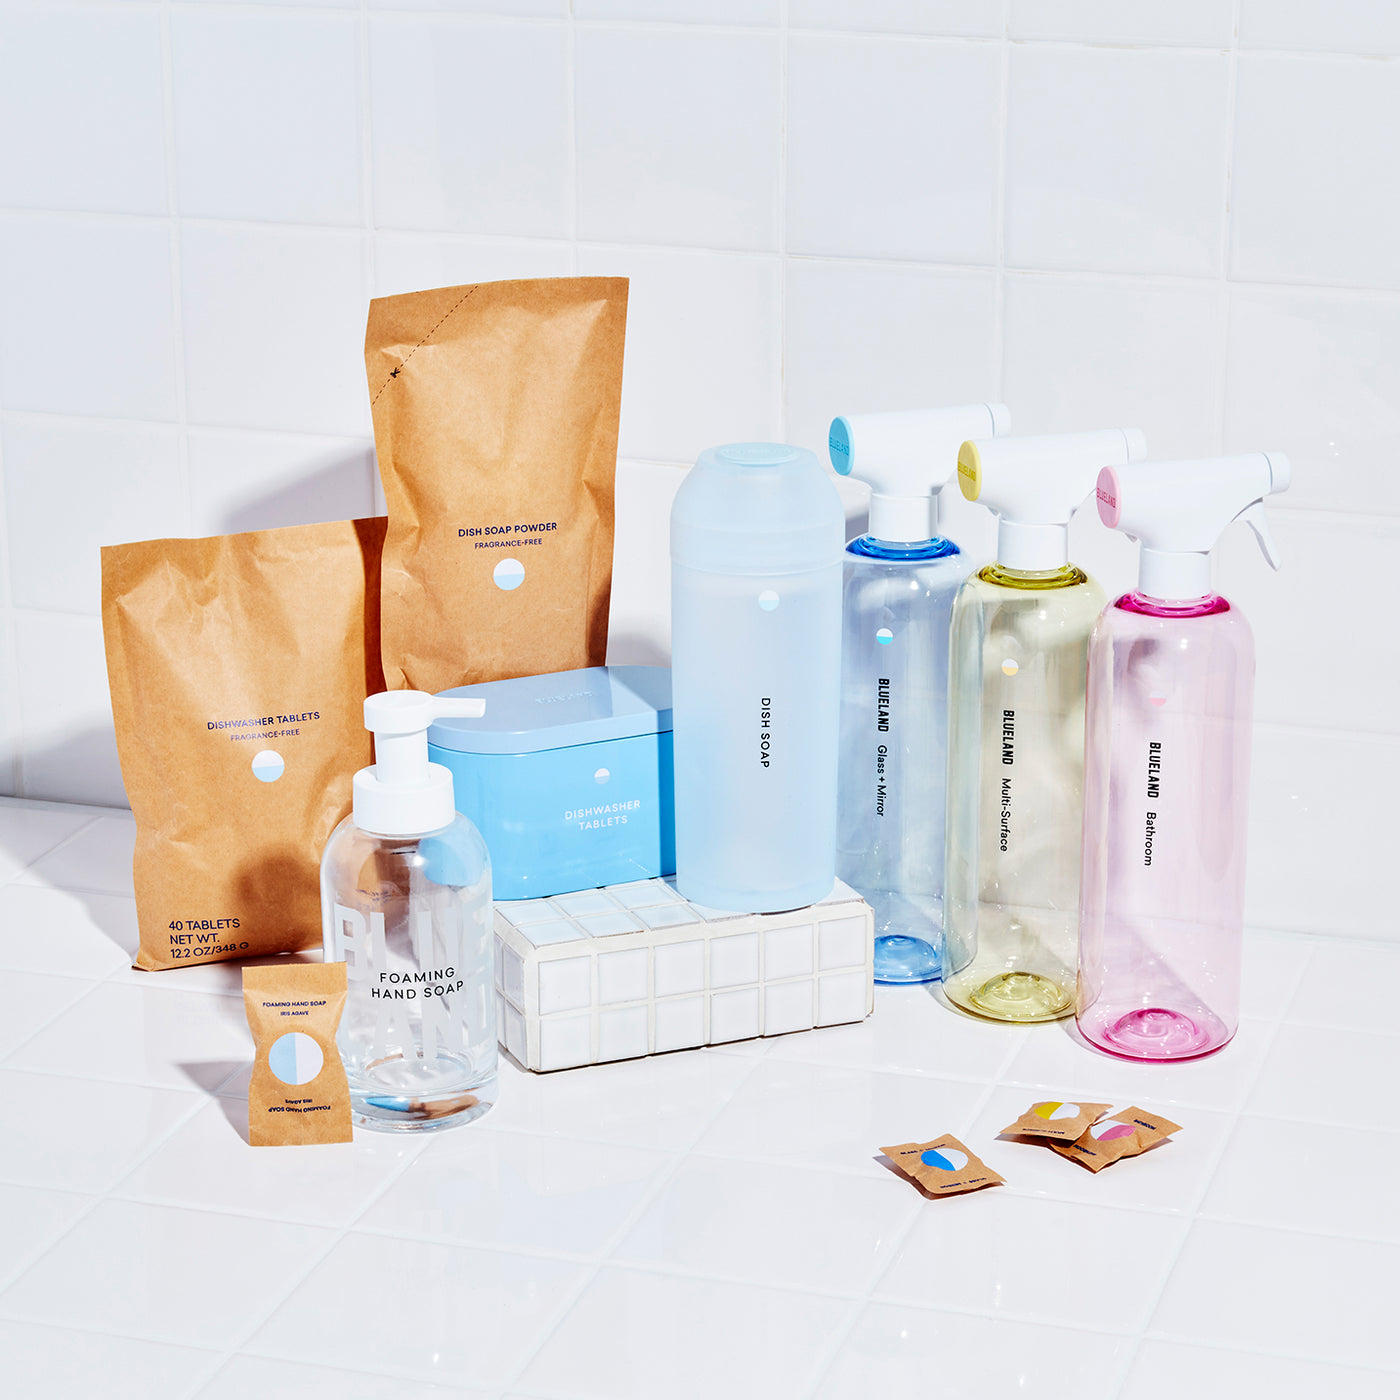 The Everyday Clean: 6 Refillable, reusable cleaning vessels with tablets or powder. 3 spray Cleaners all in tritan reusable bottles with three tablets. A glass Foaming Hand Soap Bottle and foaming hand soap tablet. A silicone shaker filled with Powder Dish Soap, a refillable steel coated tin container with dishwasher tablets. All products are on the titled surface with refill pouches for powder dish soap and dishwasher tablets in compostable packages next to their containers.